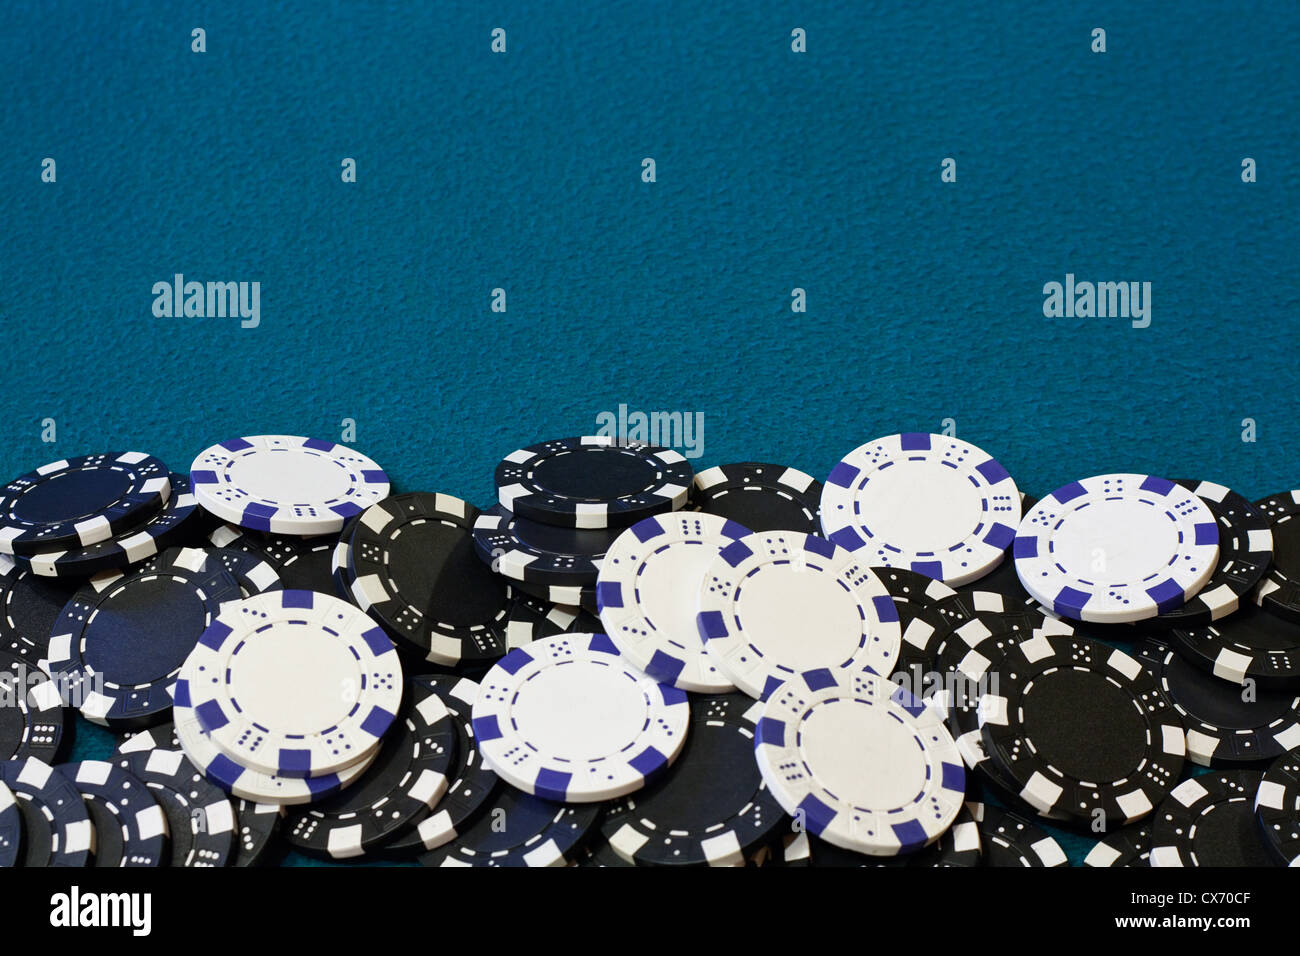 Poker chip frame or border with blue card table velvet - Stock Image